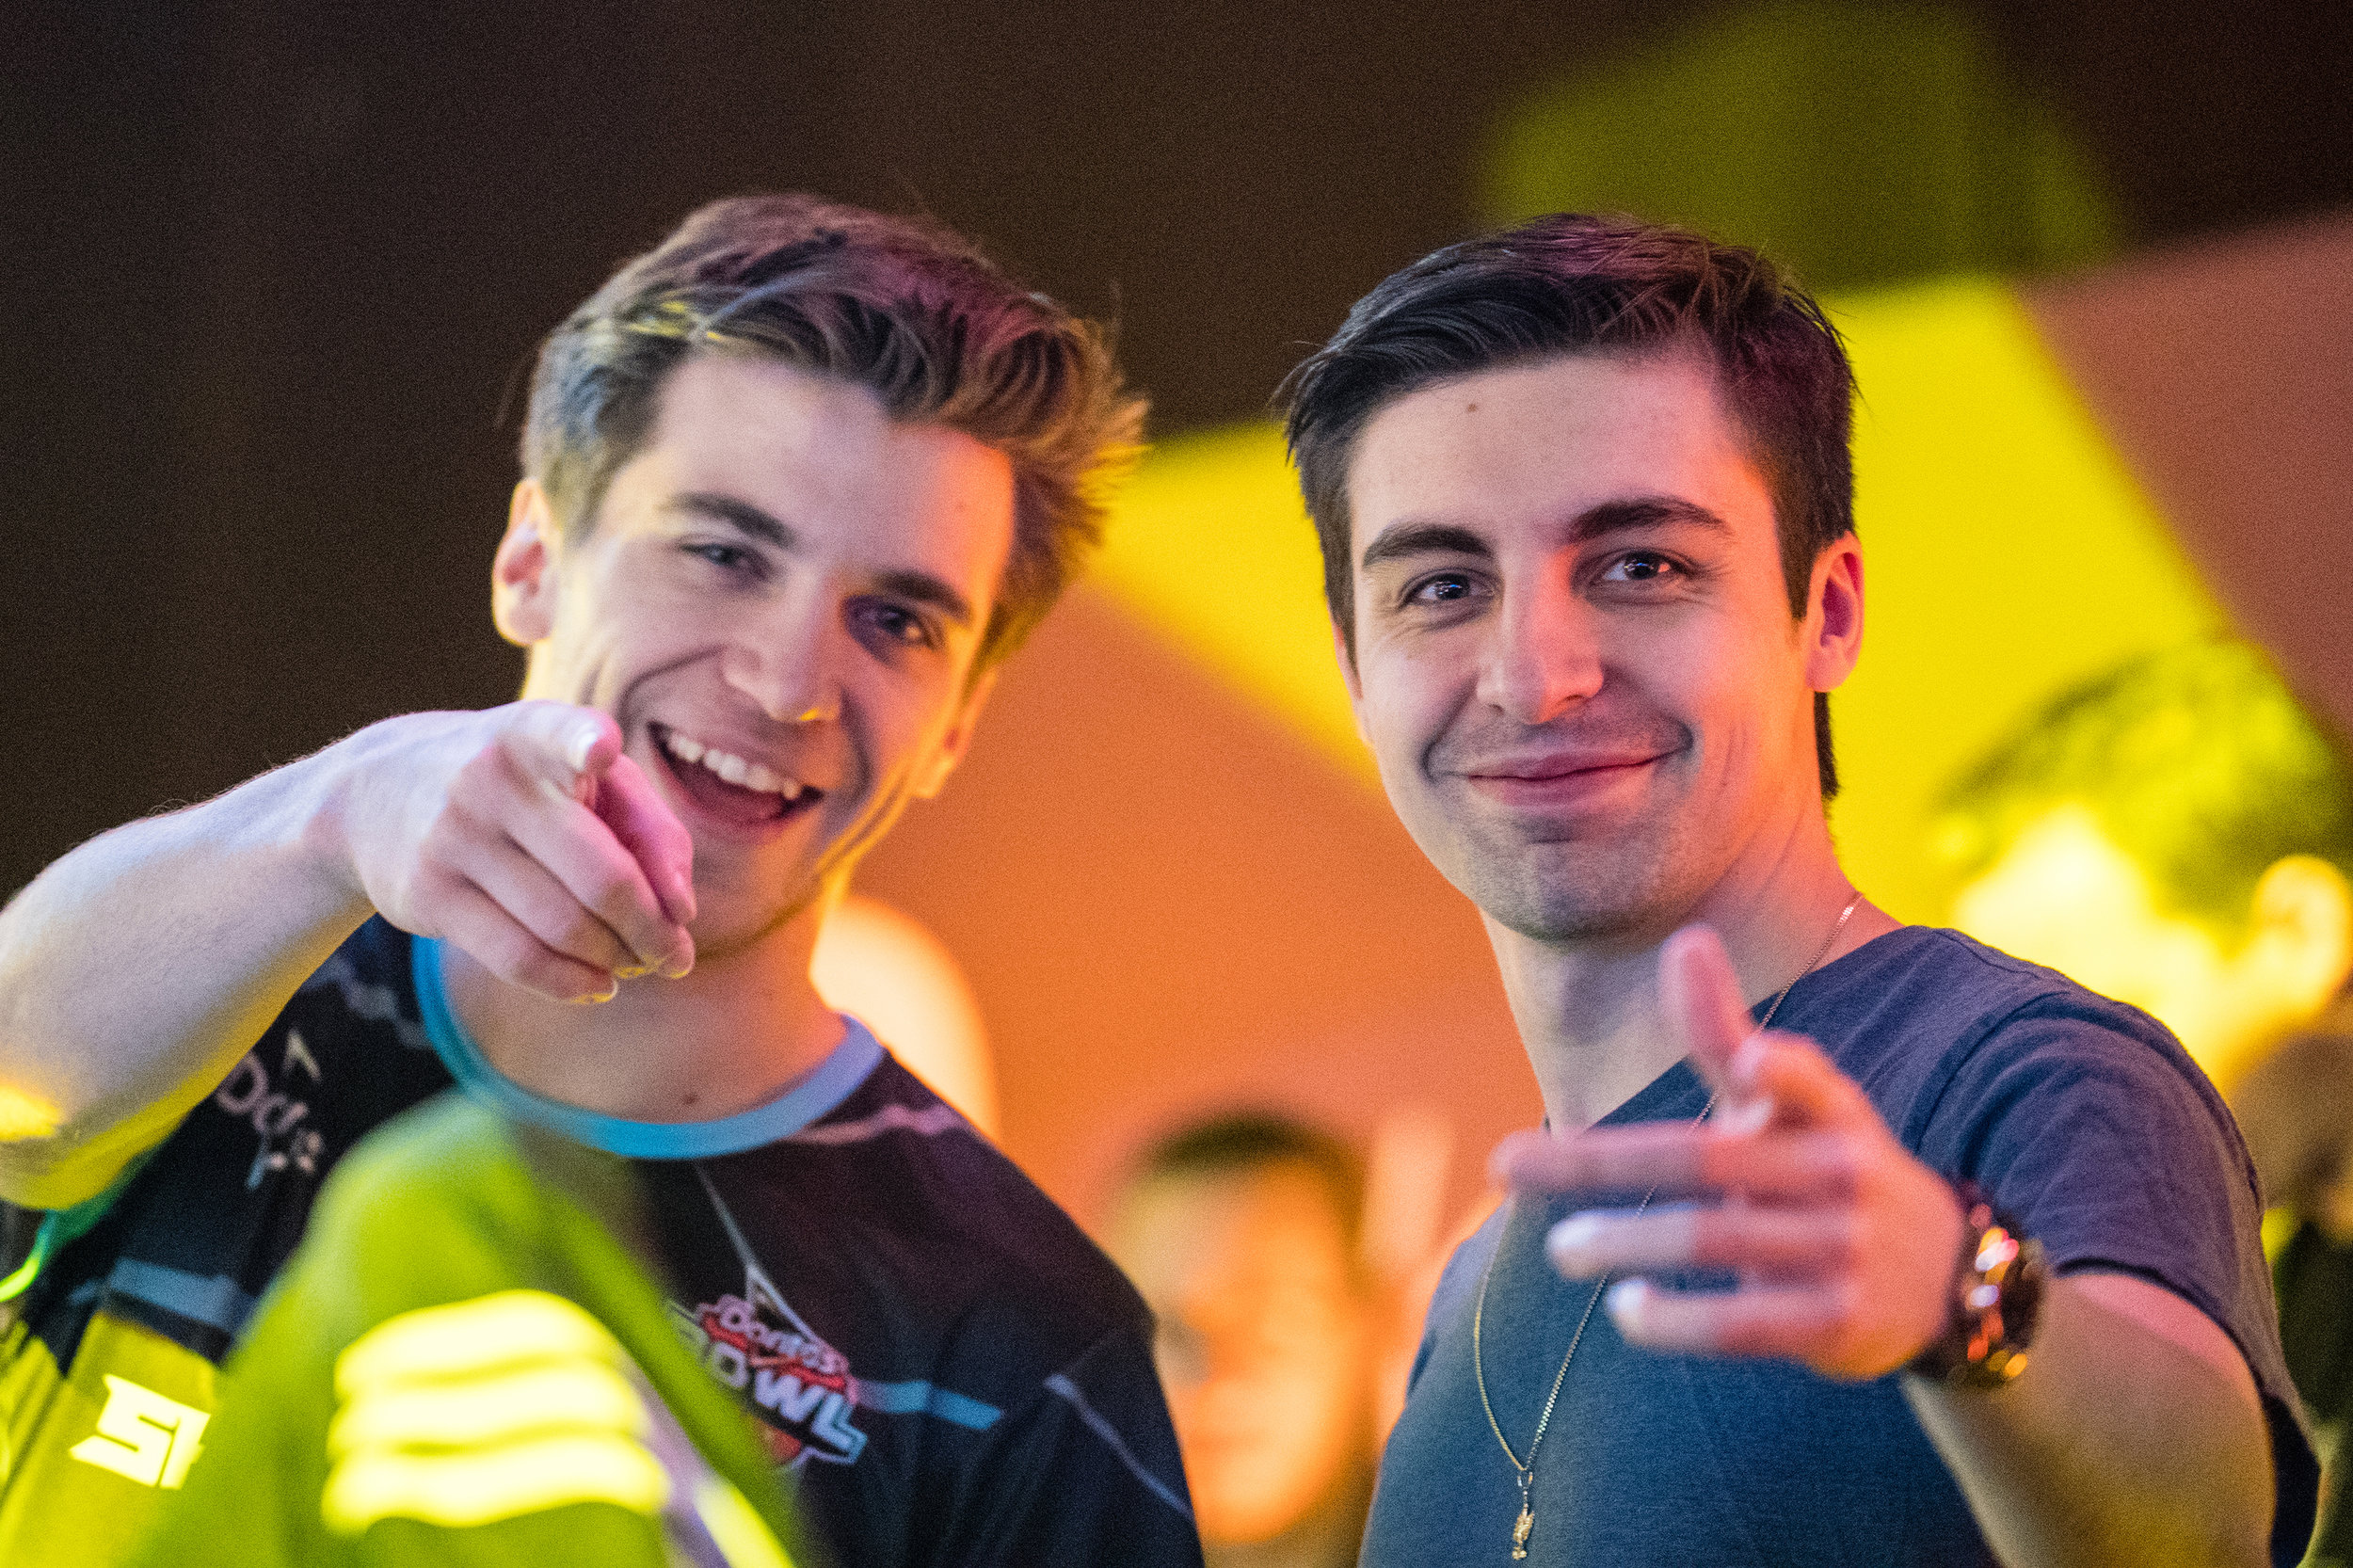 Chad and Shroud having fun competing in the first Doritos Bowl 2018 Call of Duty: Blackout Battle Royale tournament at TwitchCon, San Jose Convention Center on October 27, 2018 in San Jose, California.  Photo by Eric_Ananmalay / ESPAT Media